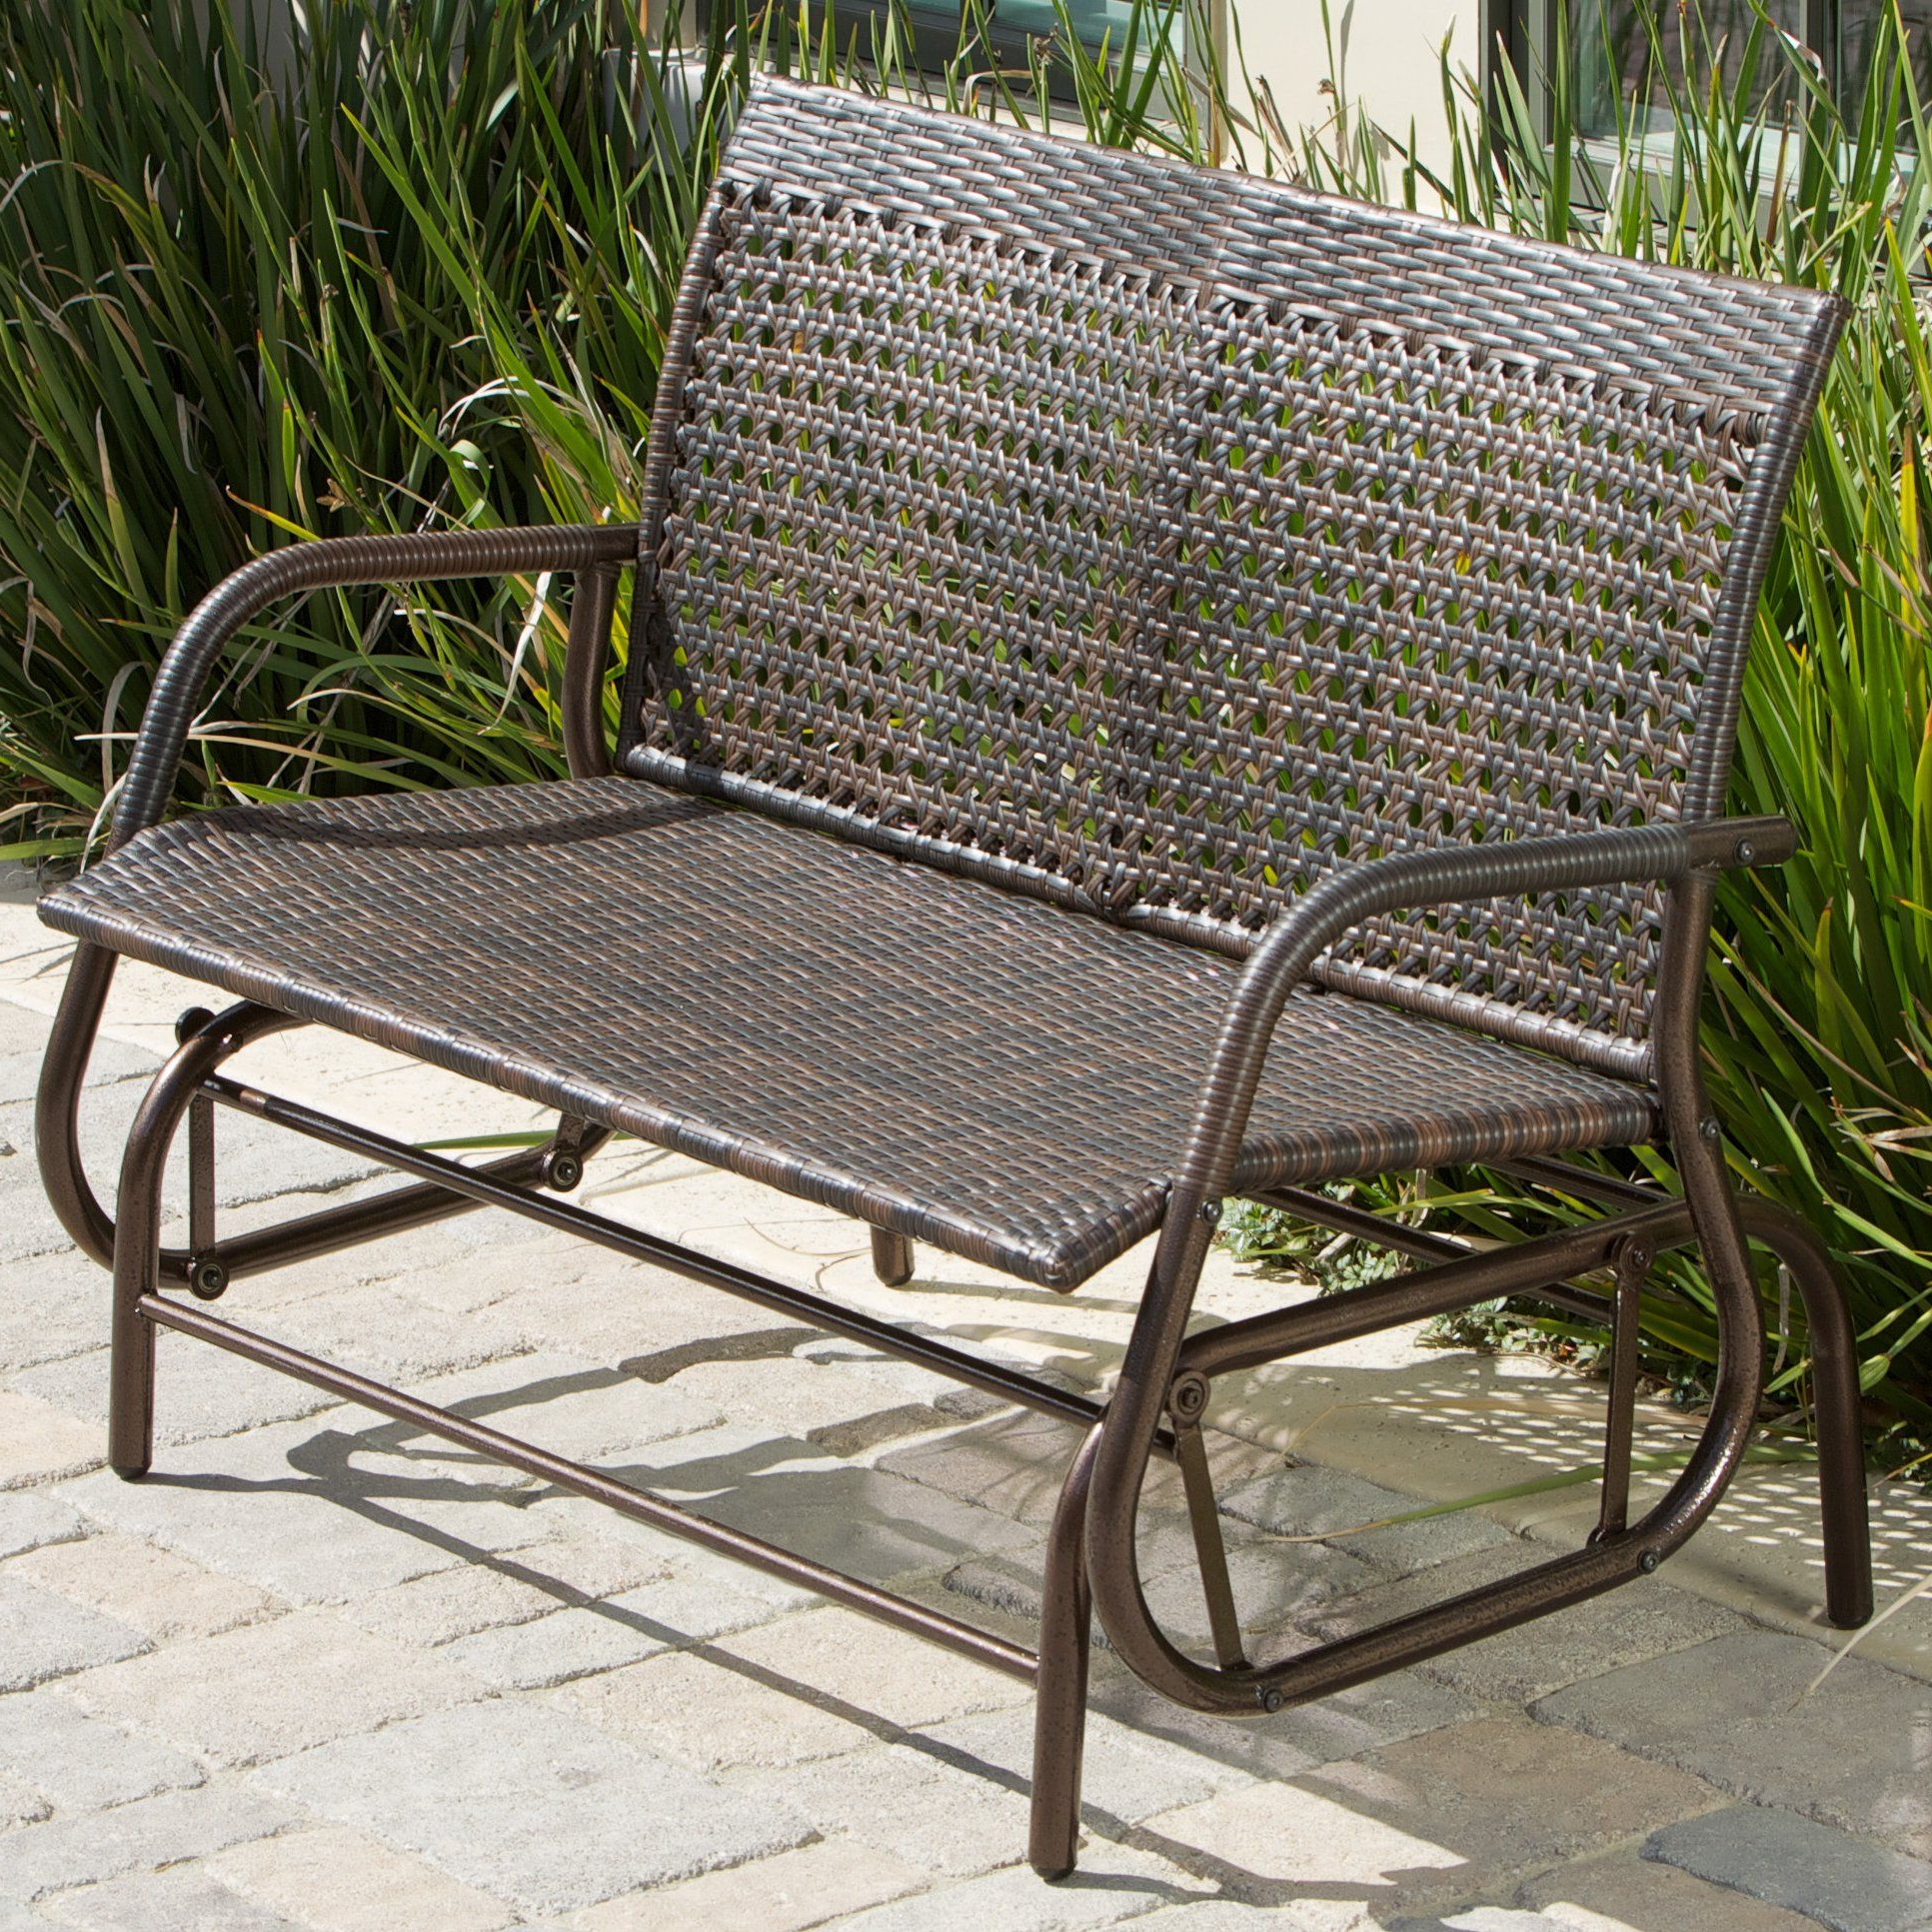 Well Liked Rocking Love Seats Glider Swing Benches With Sturdy Frame For $190 Orchid Outdoor Swinging Bench (View 30 of 30)